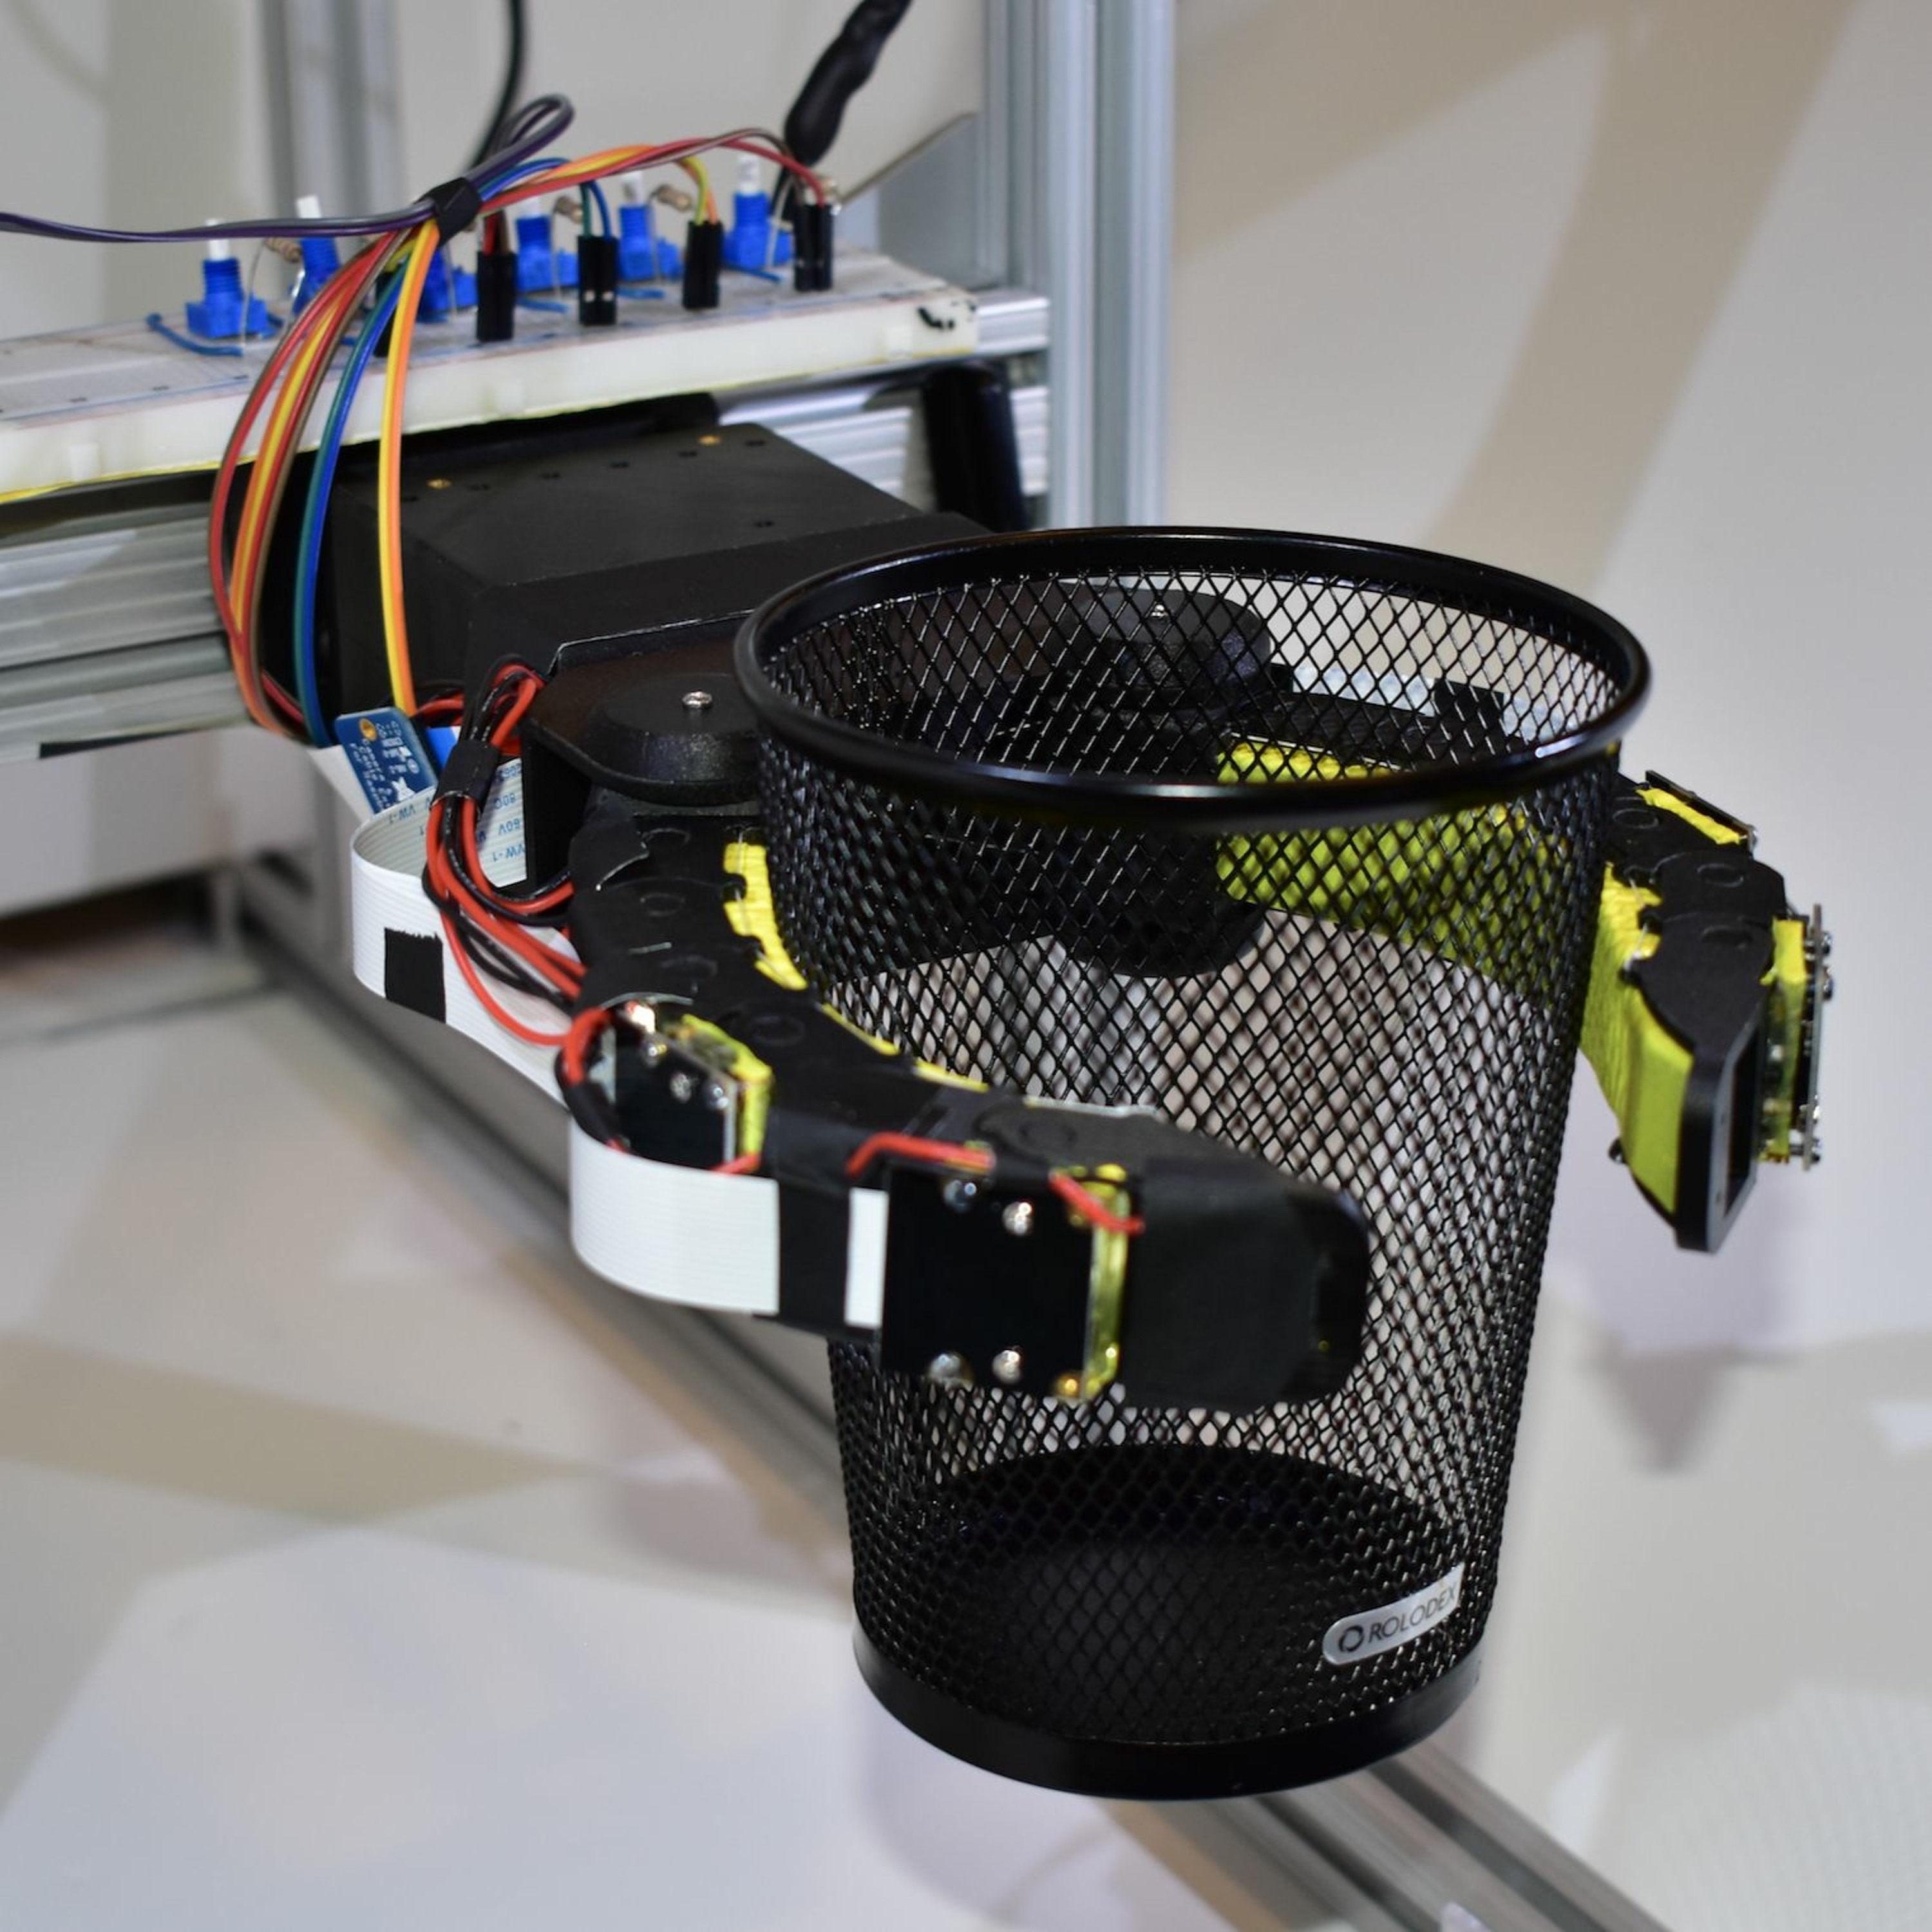 Enabling Robots to Complete Tasks on a Human Level